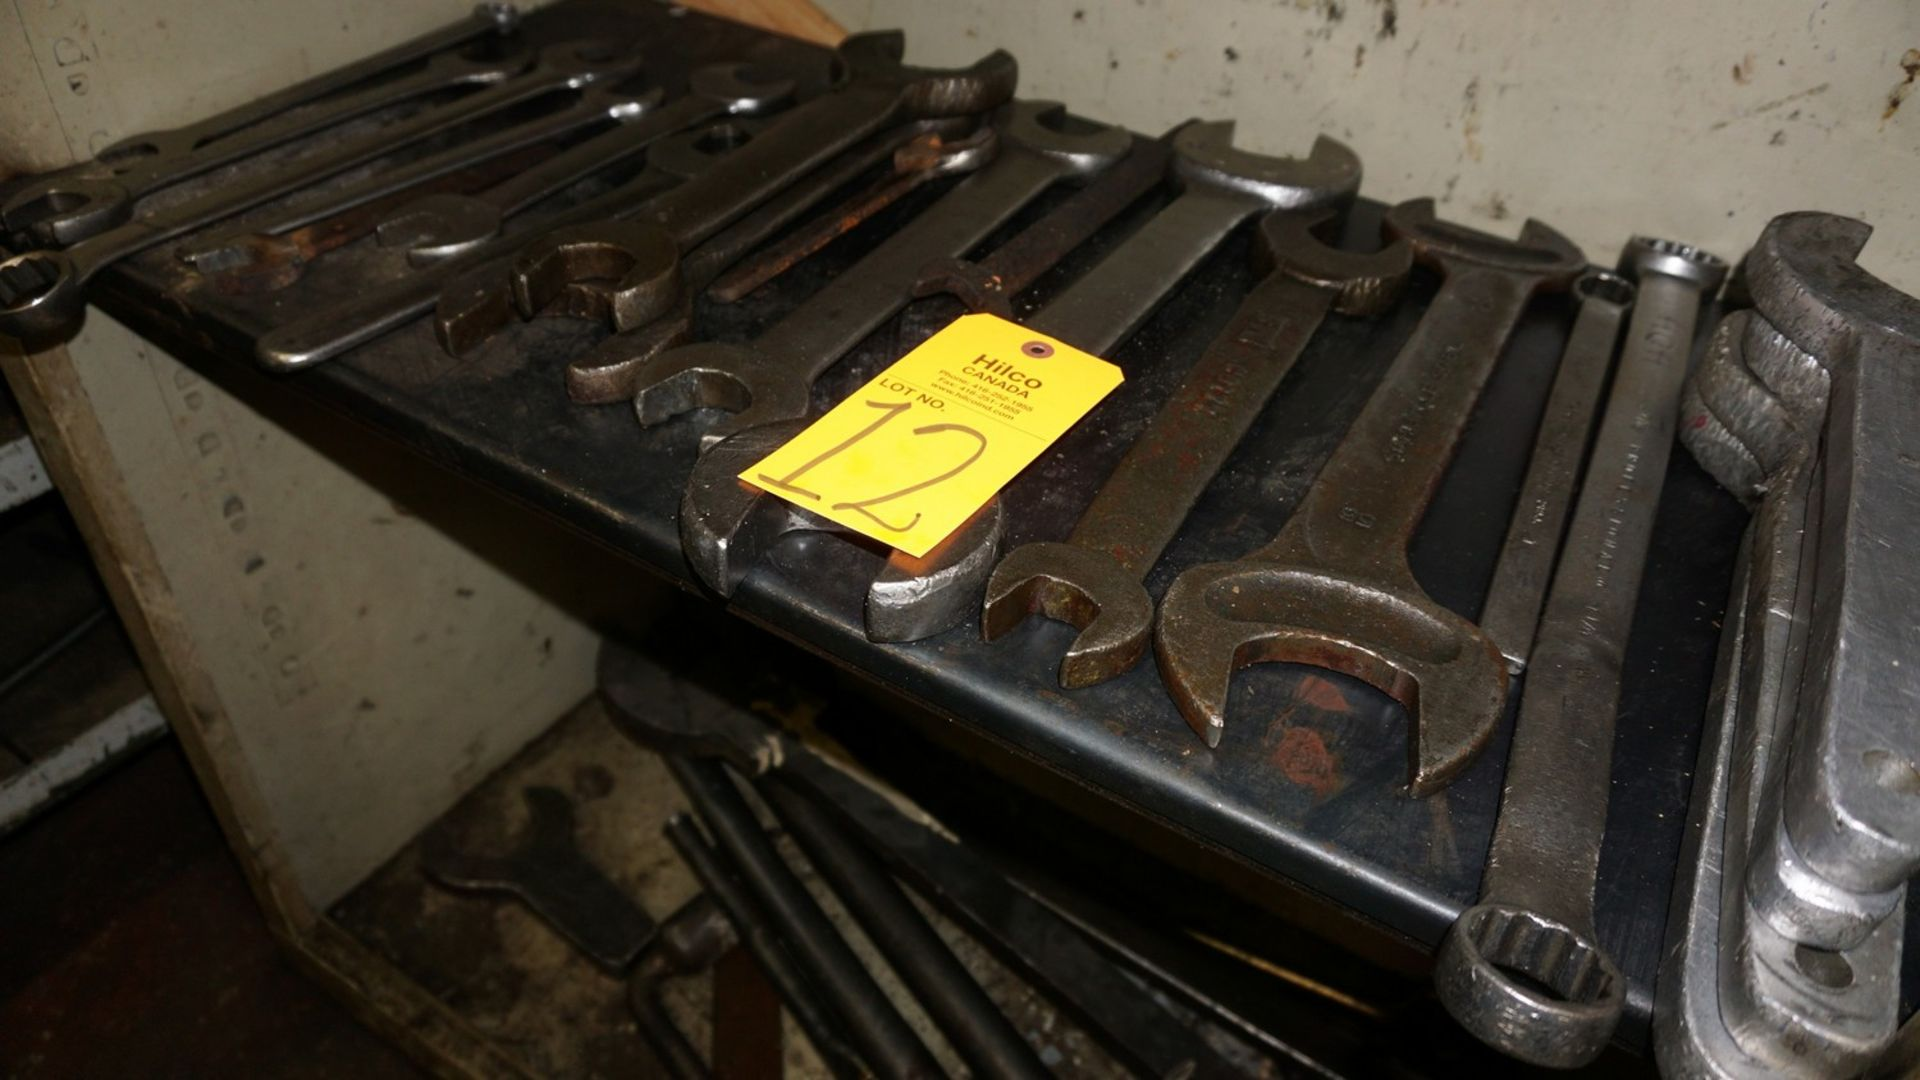 Lot 12 - Lot of Asst. Wrenches